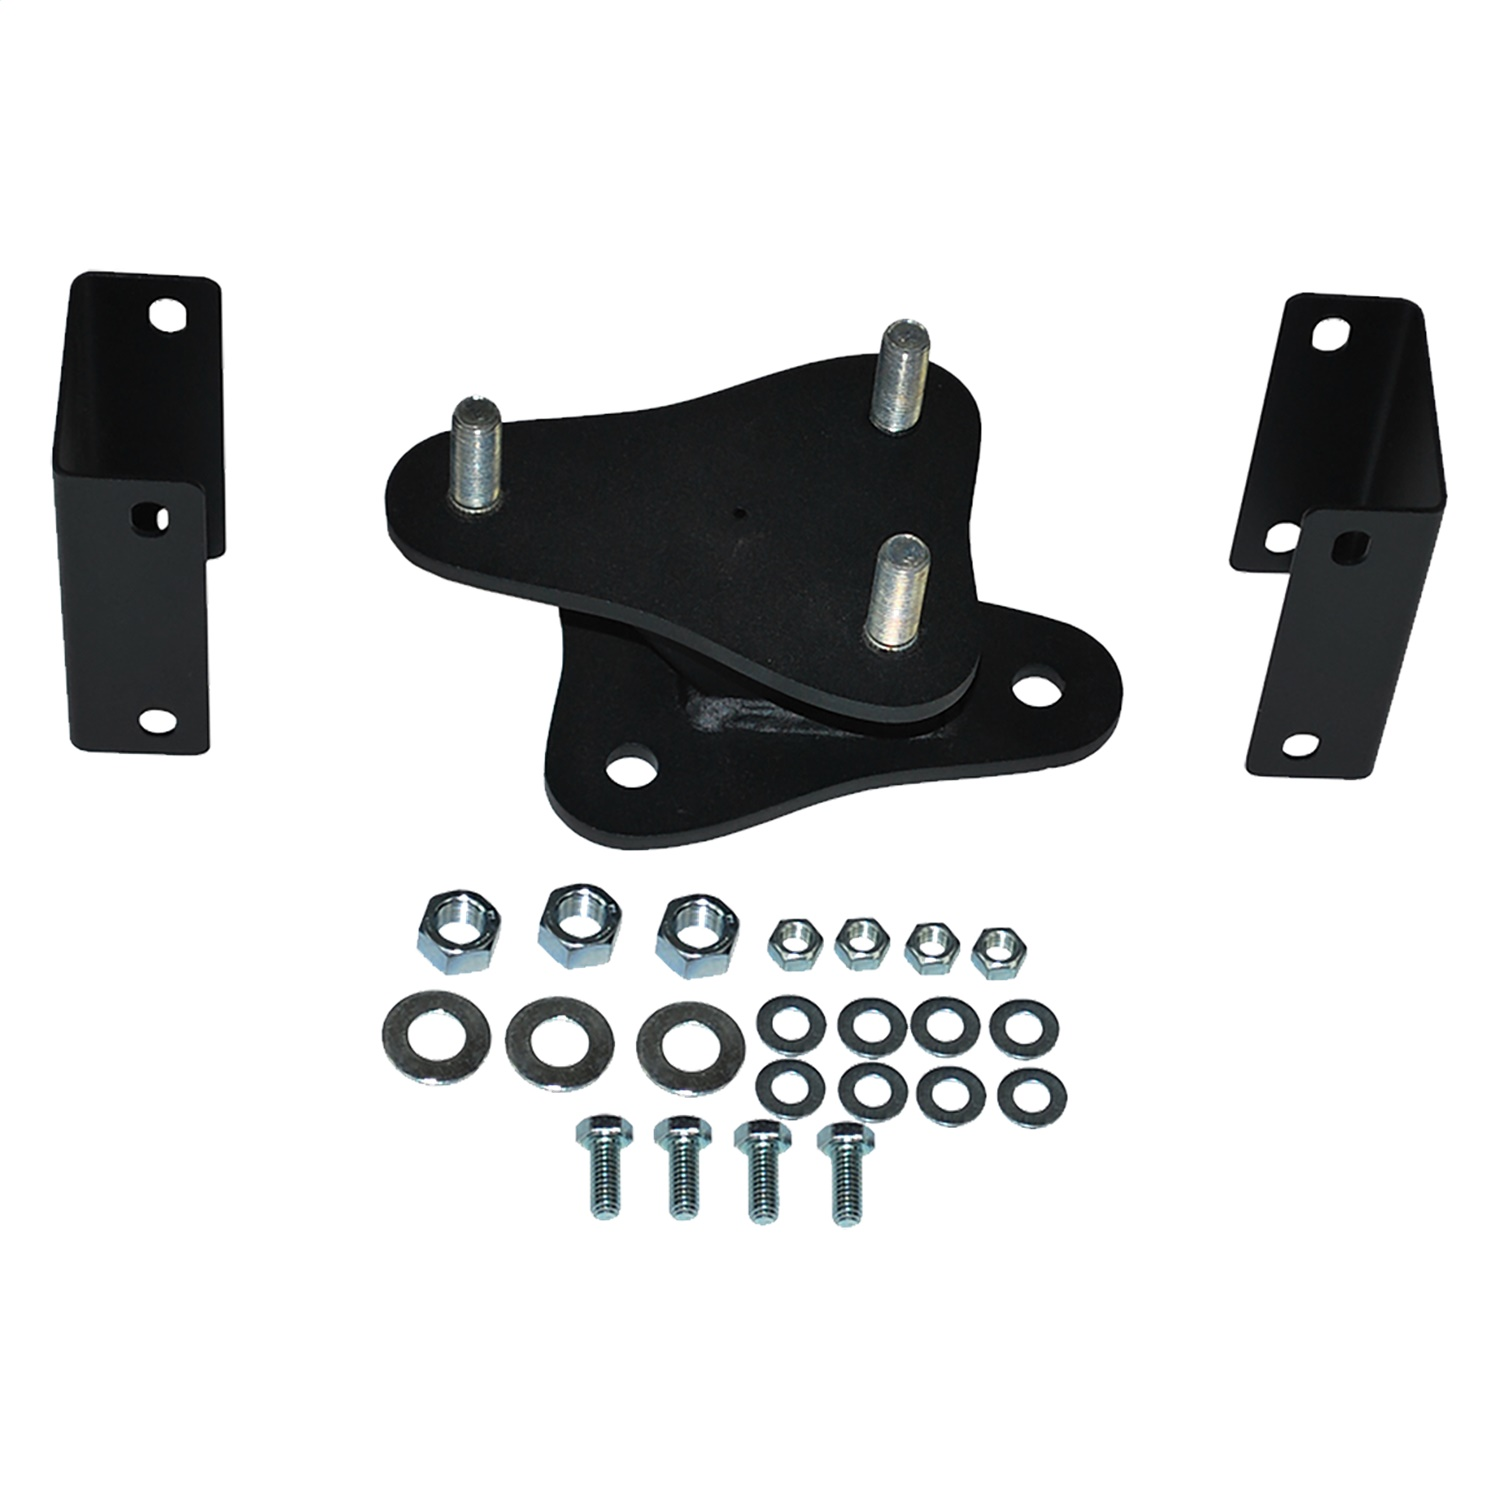 MBRP Exhaust 131042 Spare Tire Bracket Kit 97-06 TJ Wrangler (TJ) at Sears.com